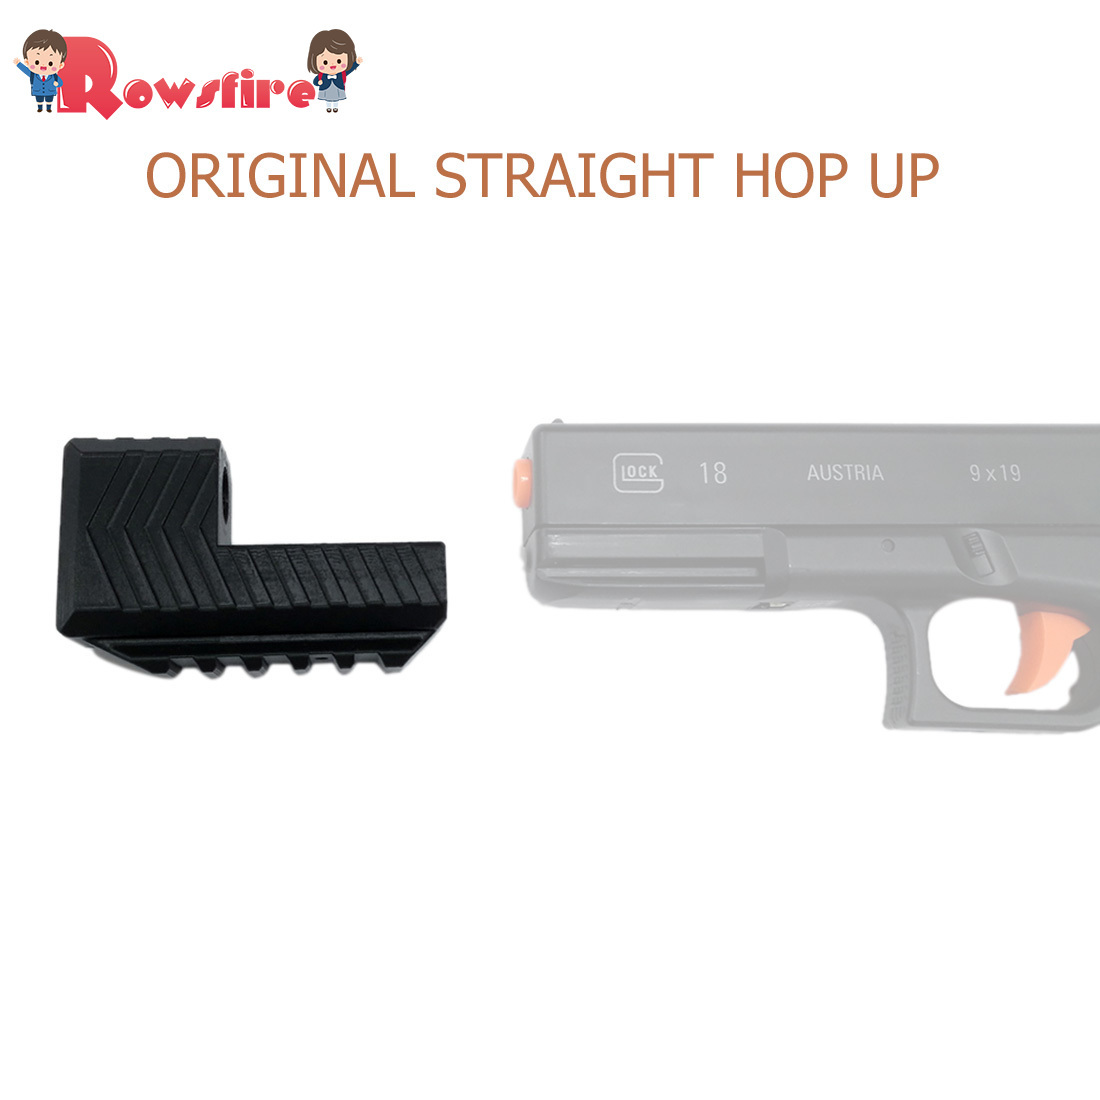 Original Straight Hop Up For SKD Glock G18 Water Gel Beads Blaster - Black